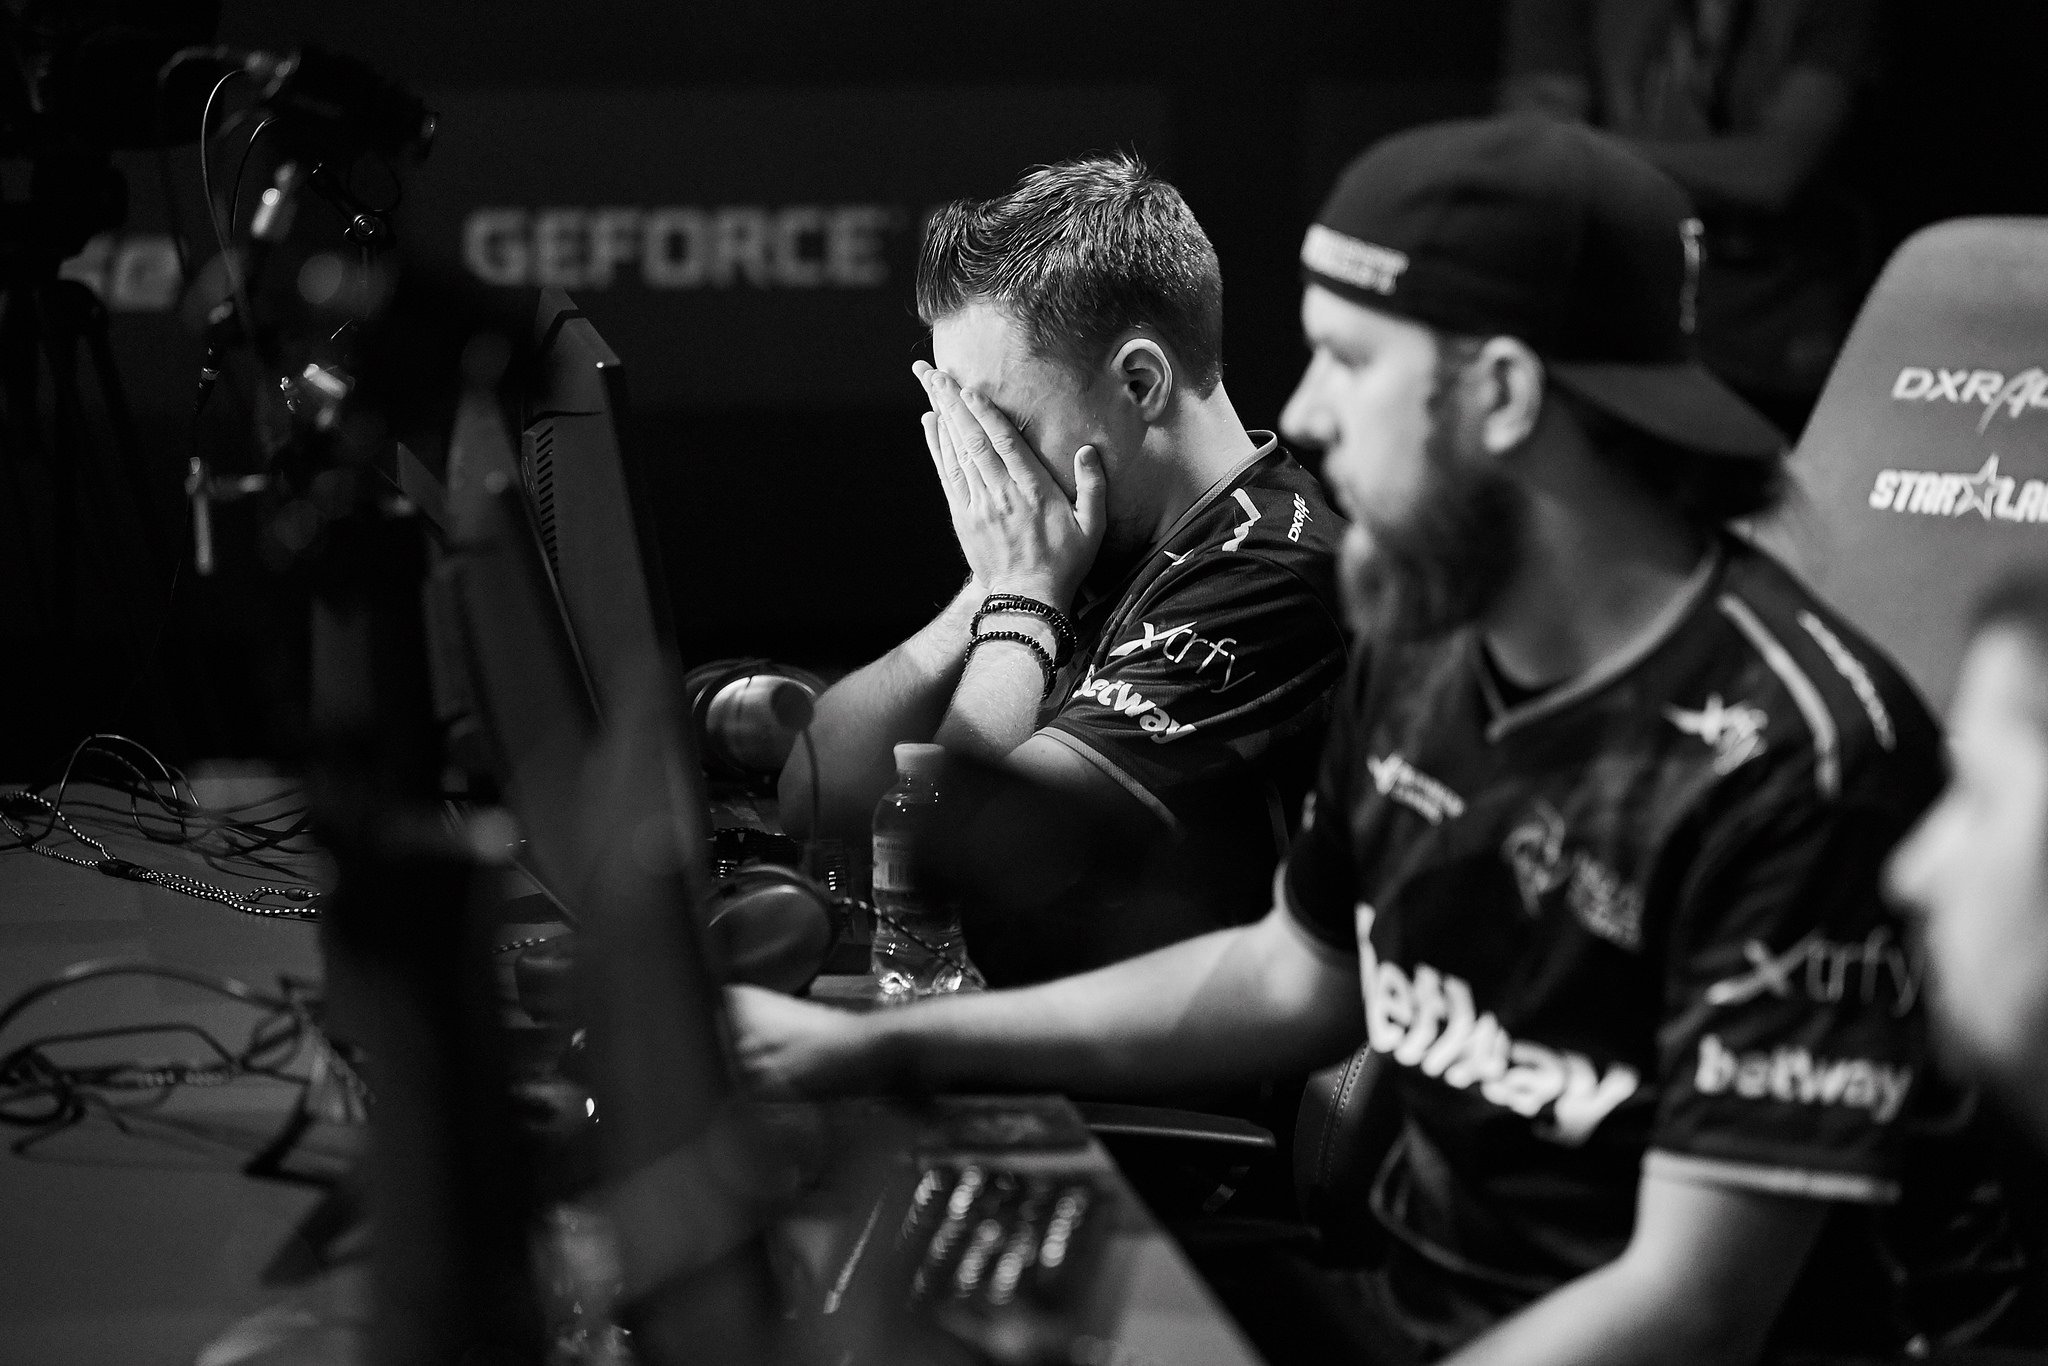 GeT_RiGhT f0rest